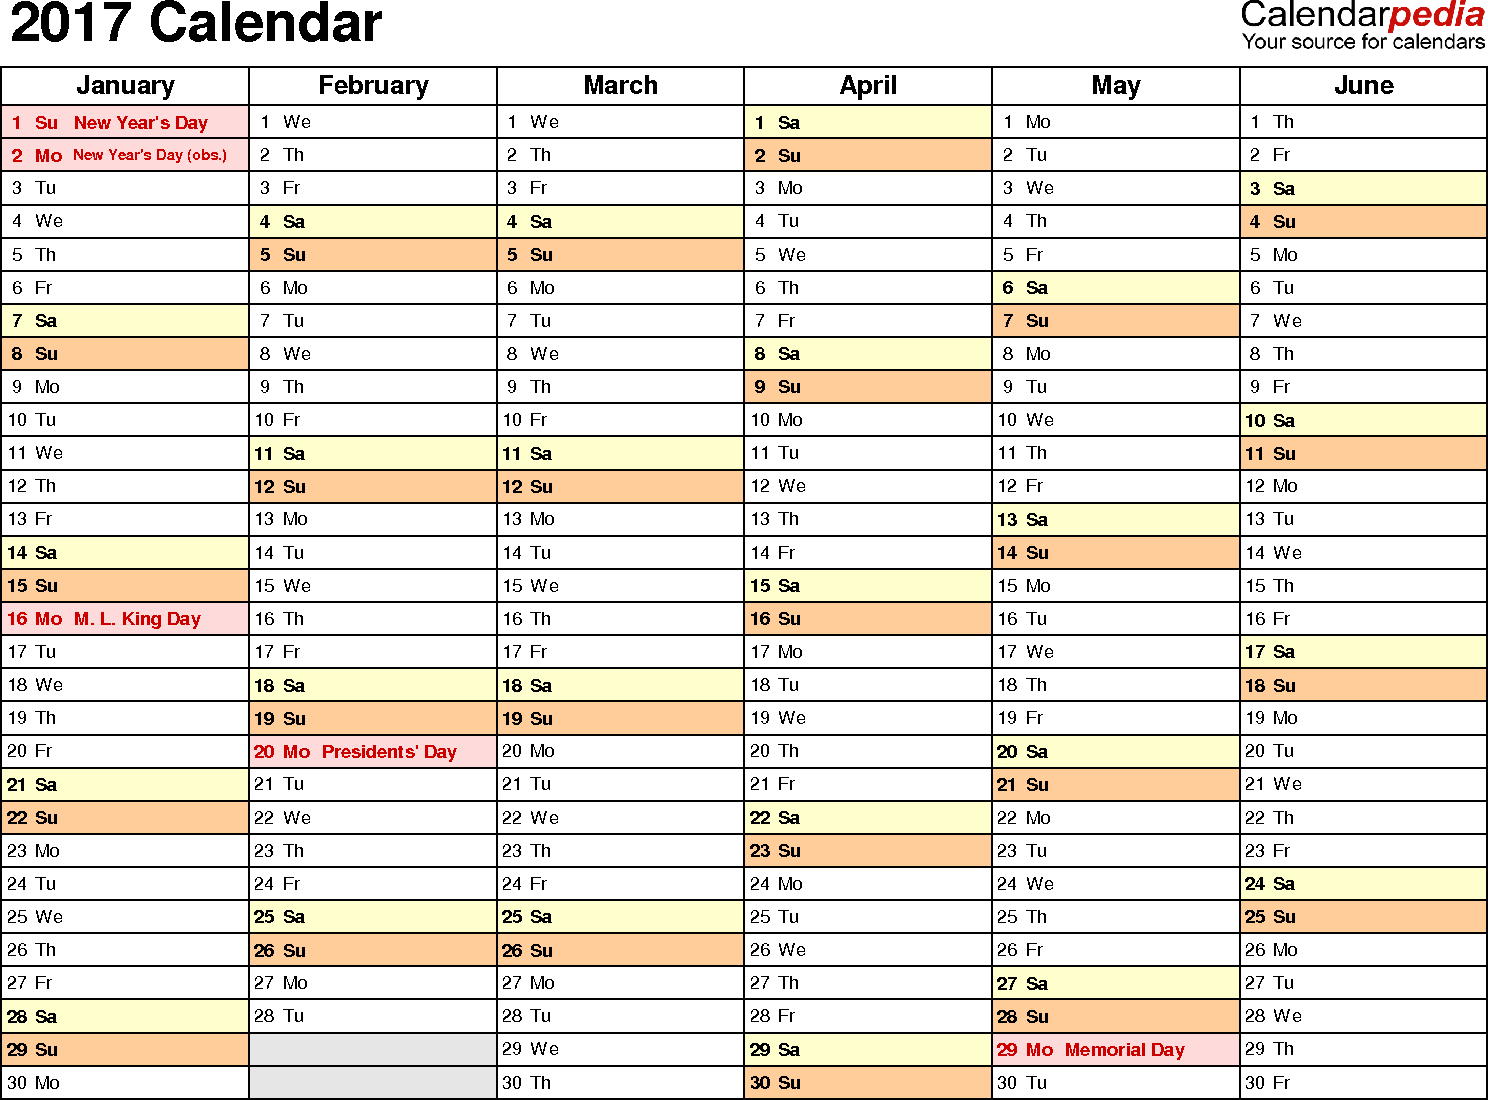 Ediblewildsus  Marvellous  Calendar  Download  Free Printable Excel Templates Xls With Inspiring Template   Calendar For Excel Months Horizontally  Pages Landscape Orientation With Archaic Median Absolute Deviation Excel Also Excel If And If In Addition Present Worth Excel And Excel Pick From Drop Down List  As Well As Average Function In Excel  Additionally Linear Optimization Excel From Calendarpediacom With Ediblewildsus  Inspiring  Calendar  Download  Free Printable Excel Templates Xls With Archaic Template   Calendar For Excel Months Horizontally  Pages Landscape Orientation And Marvellous Median Absolute Deviation Excel Also Excel If And If In Addition Present Worth Excel From Calendarpediacom